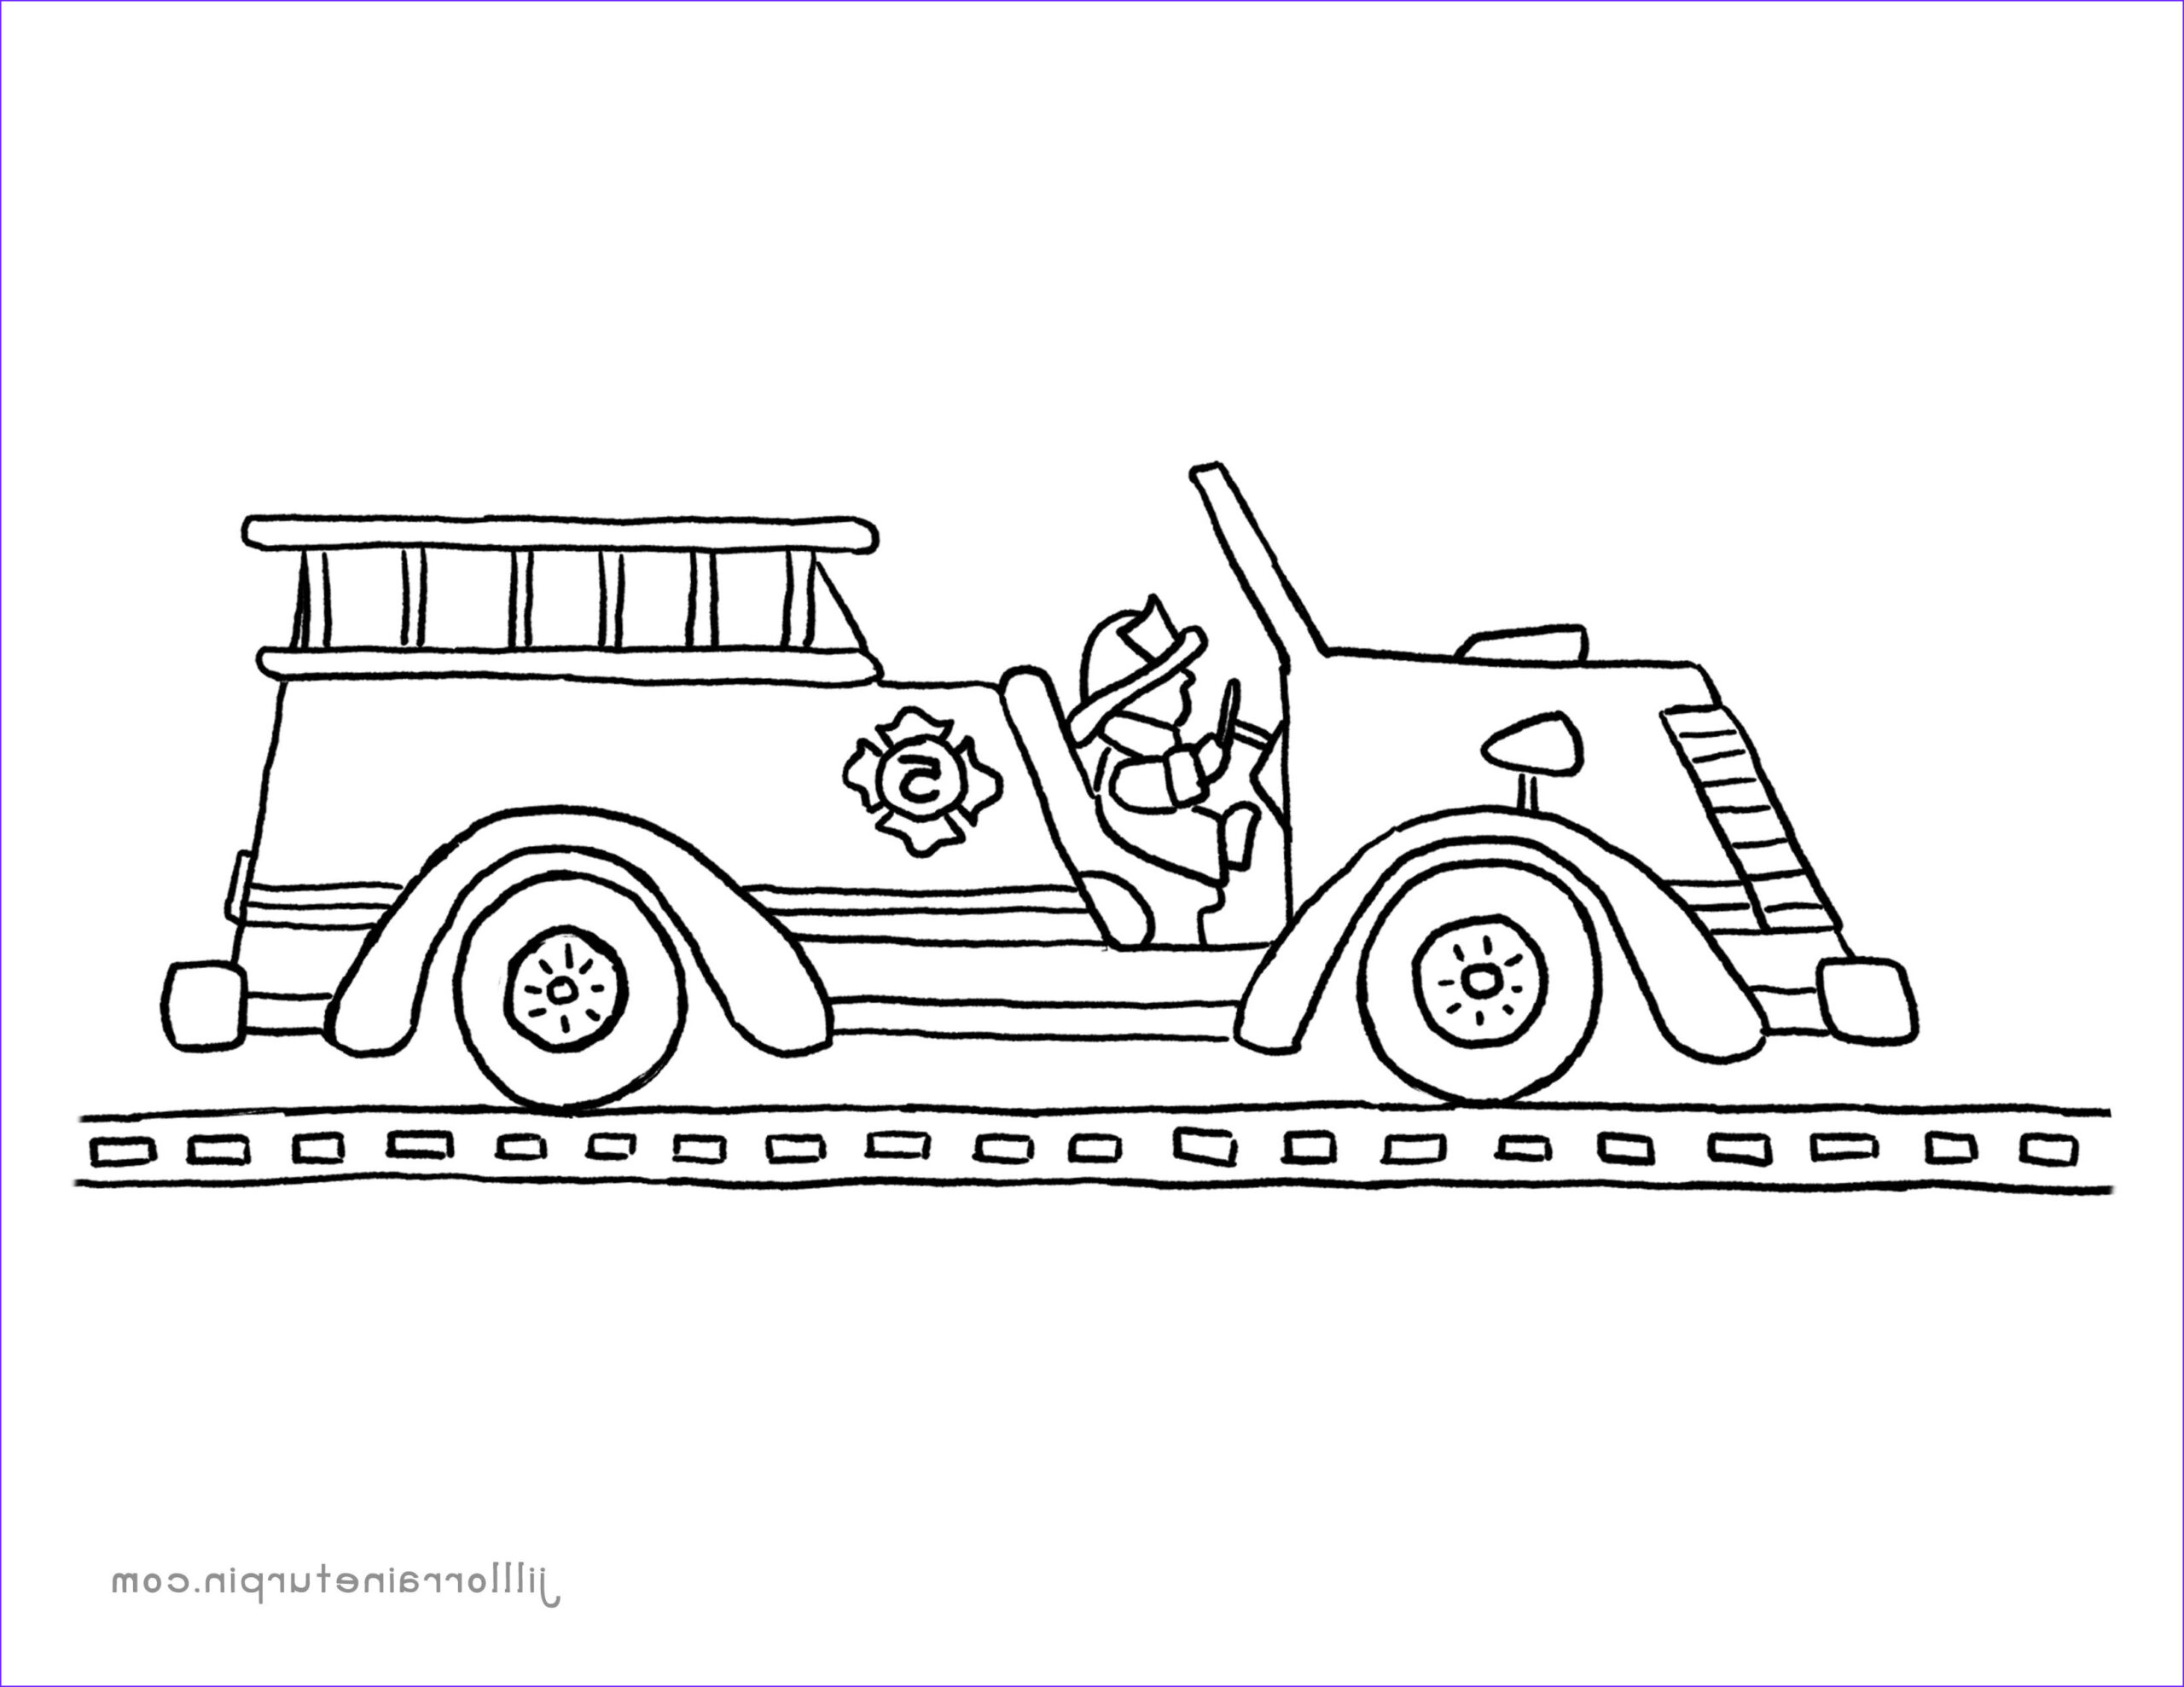 Fire Truck Coloring Pages Best Of Photos Coloring Pages – My Very Own Fire Truck